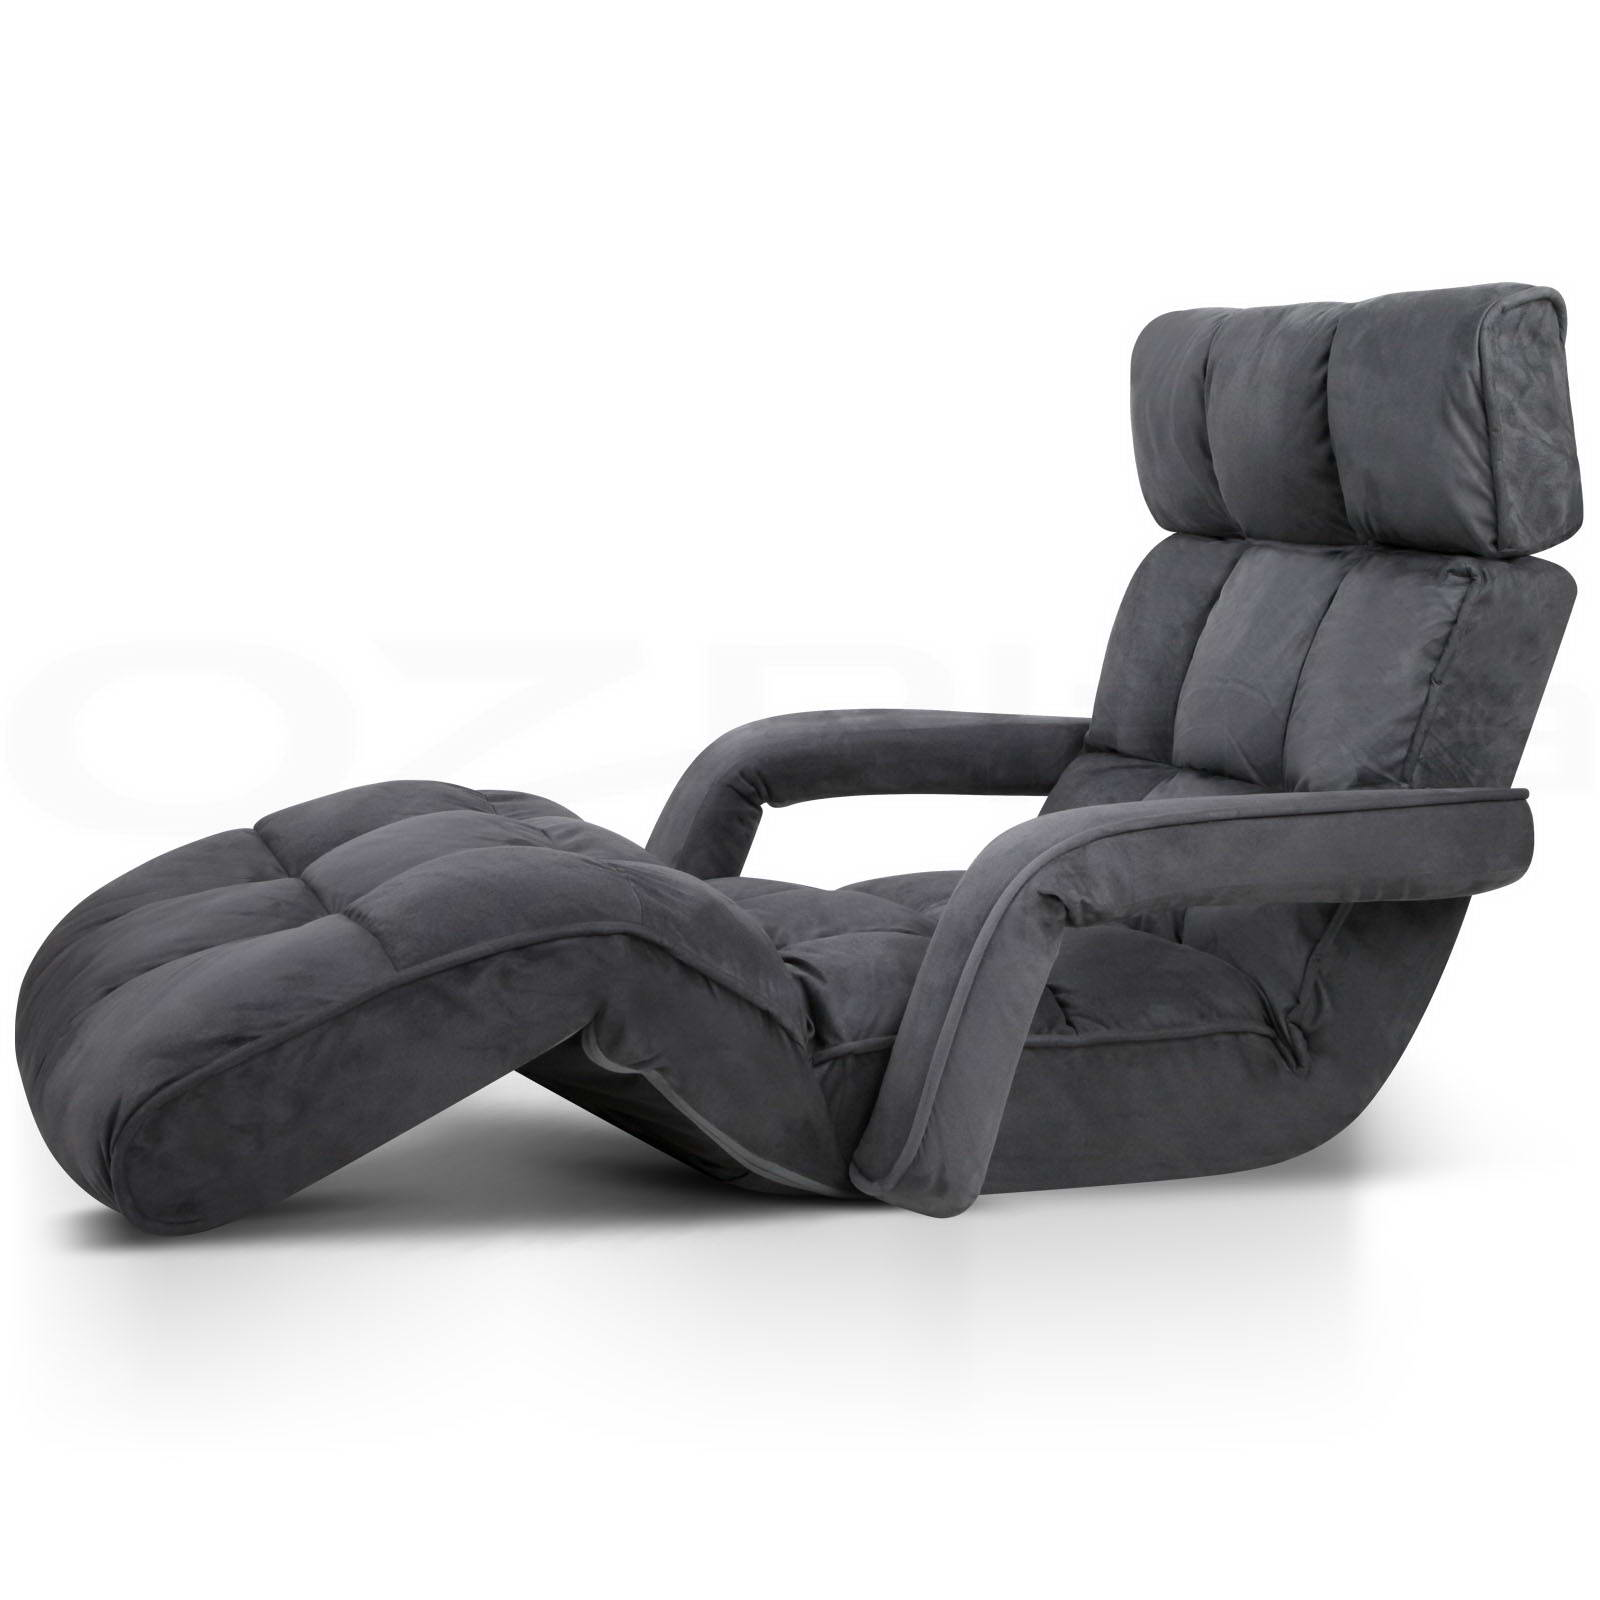 Lounge Sofa Bed Floor Armchair Folding Recliner Chaise ...